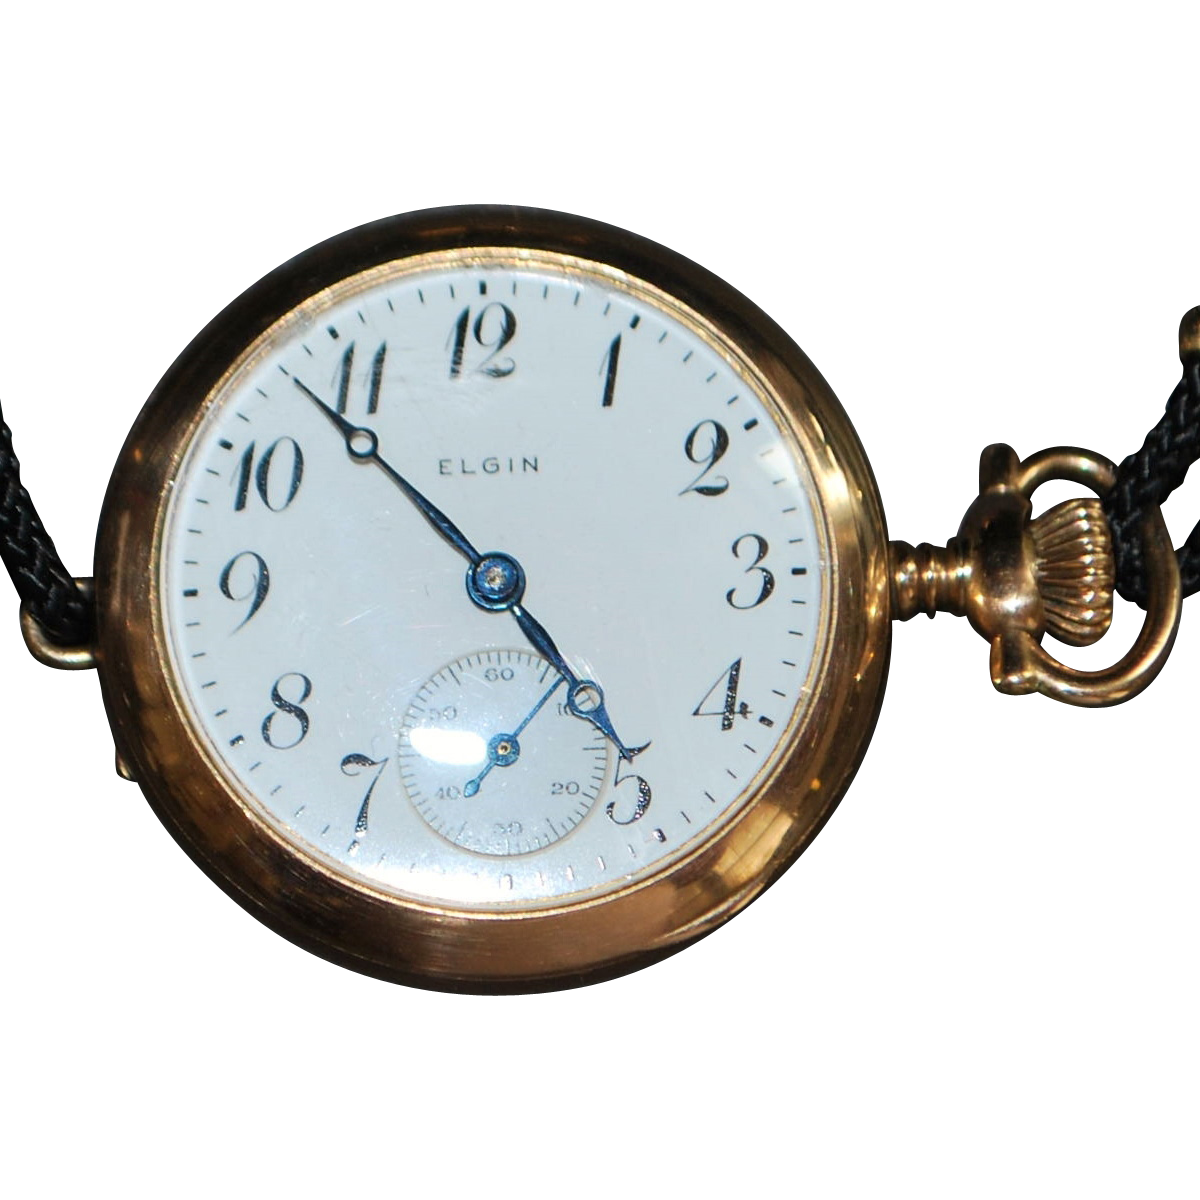 Early Lady's Elgin Pocket watch/Wrist watch - 1908